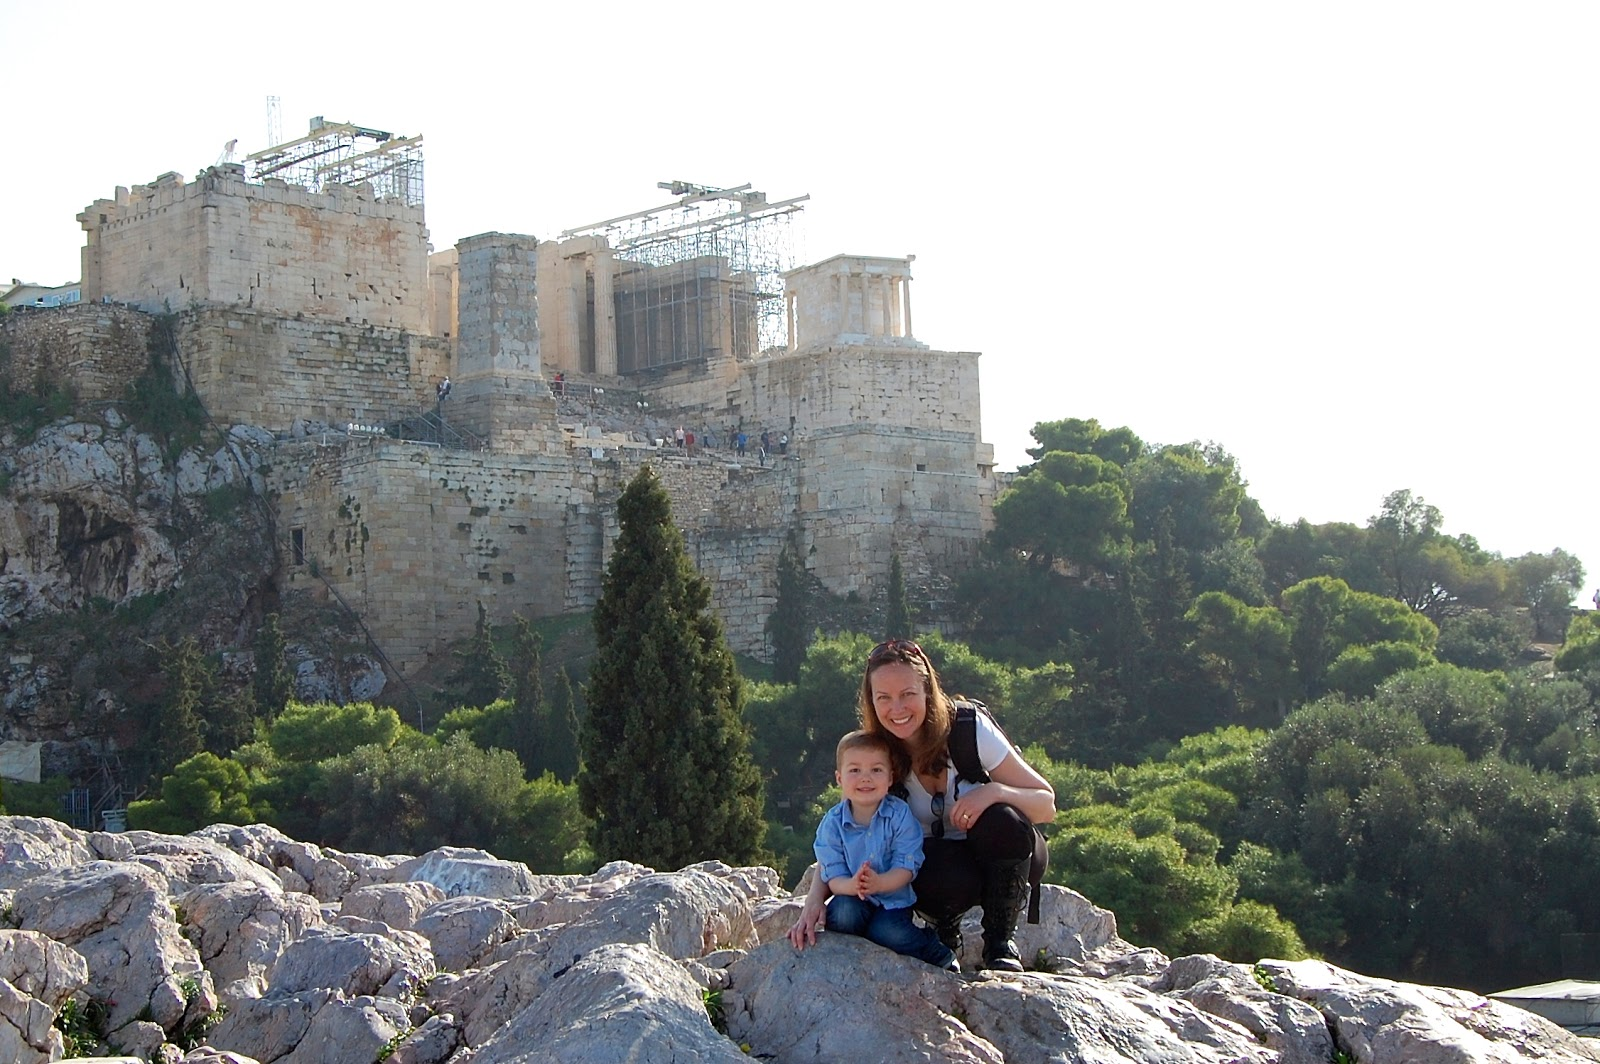 Posing in front of the Acropolis in Athens, Greece